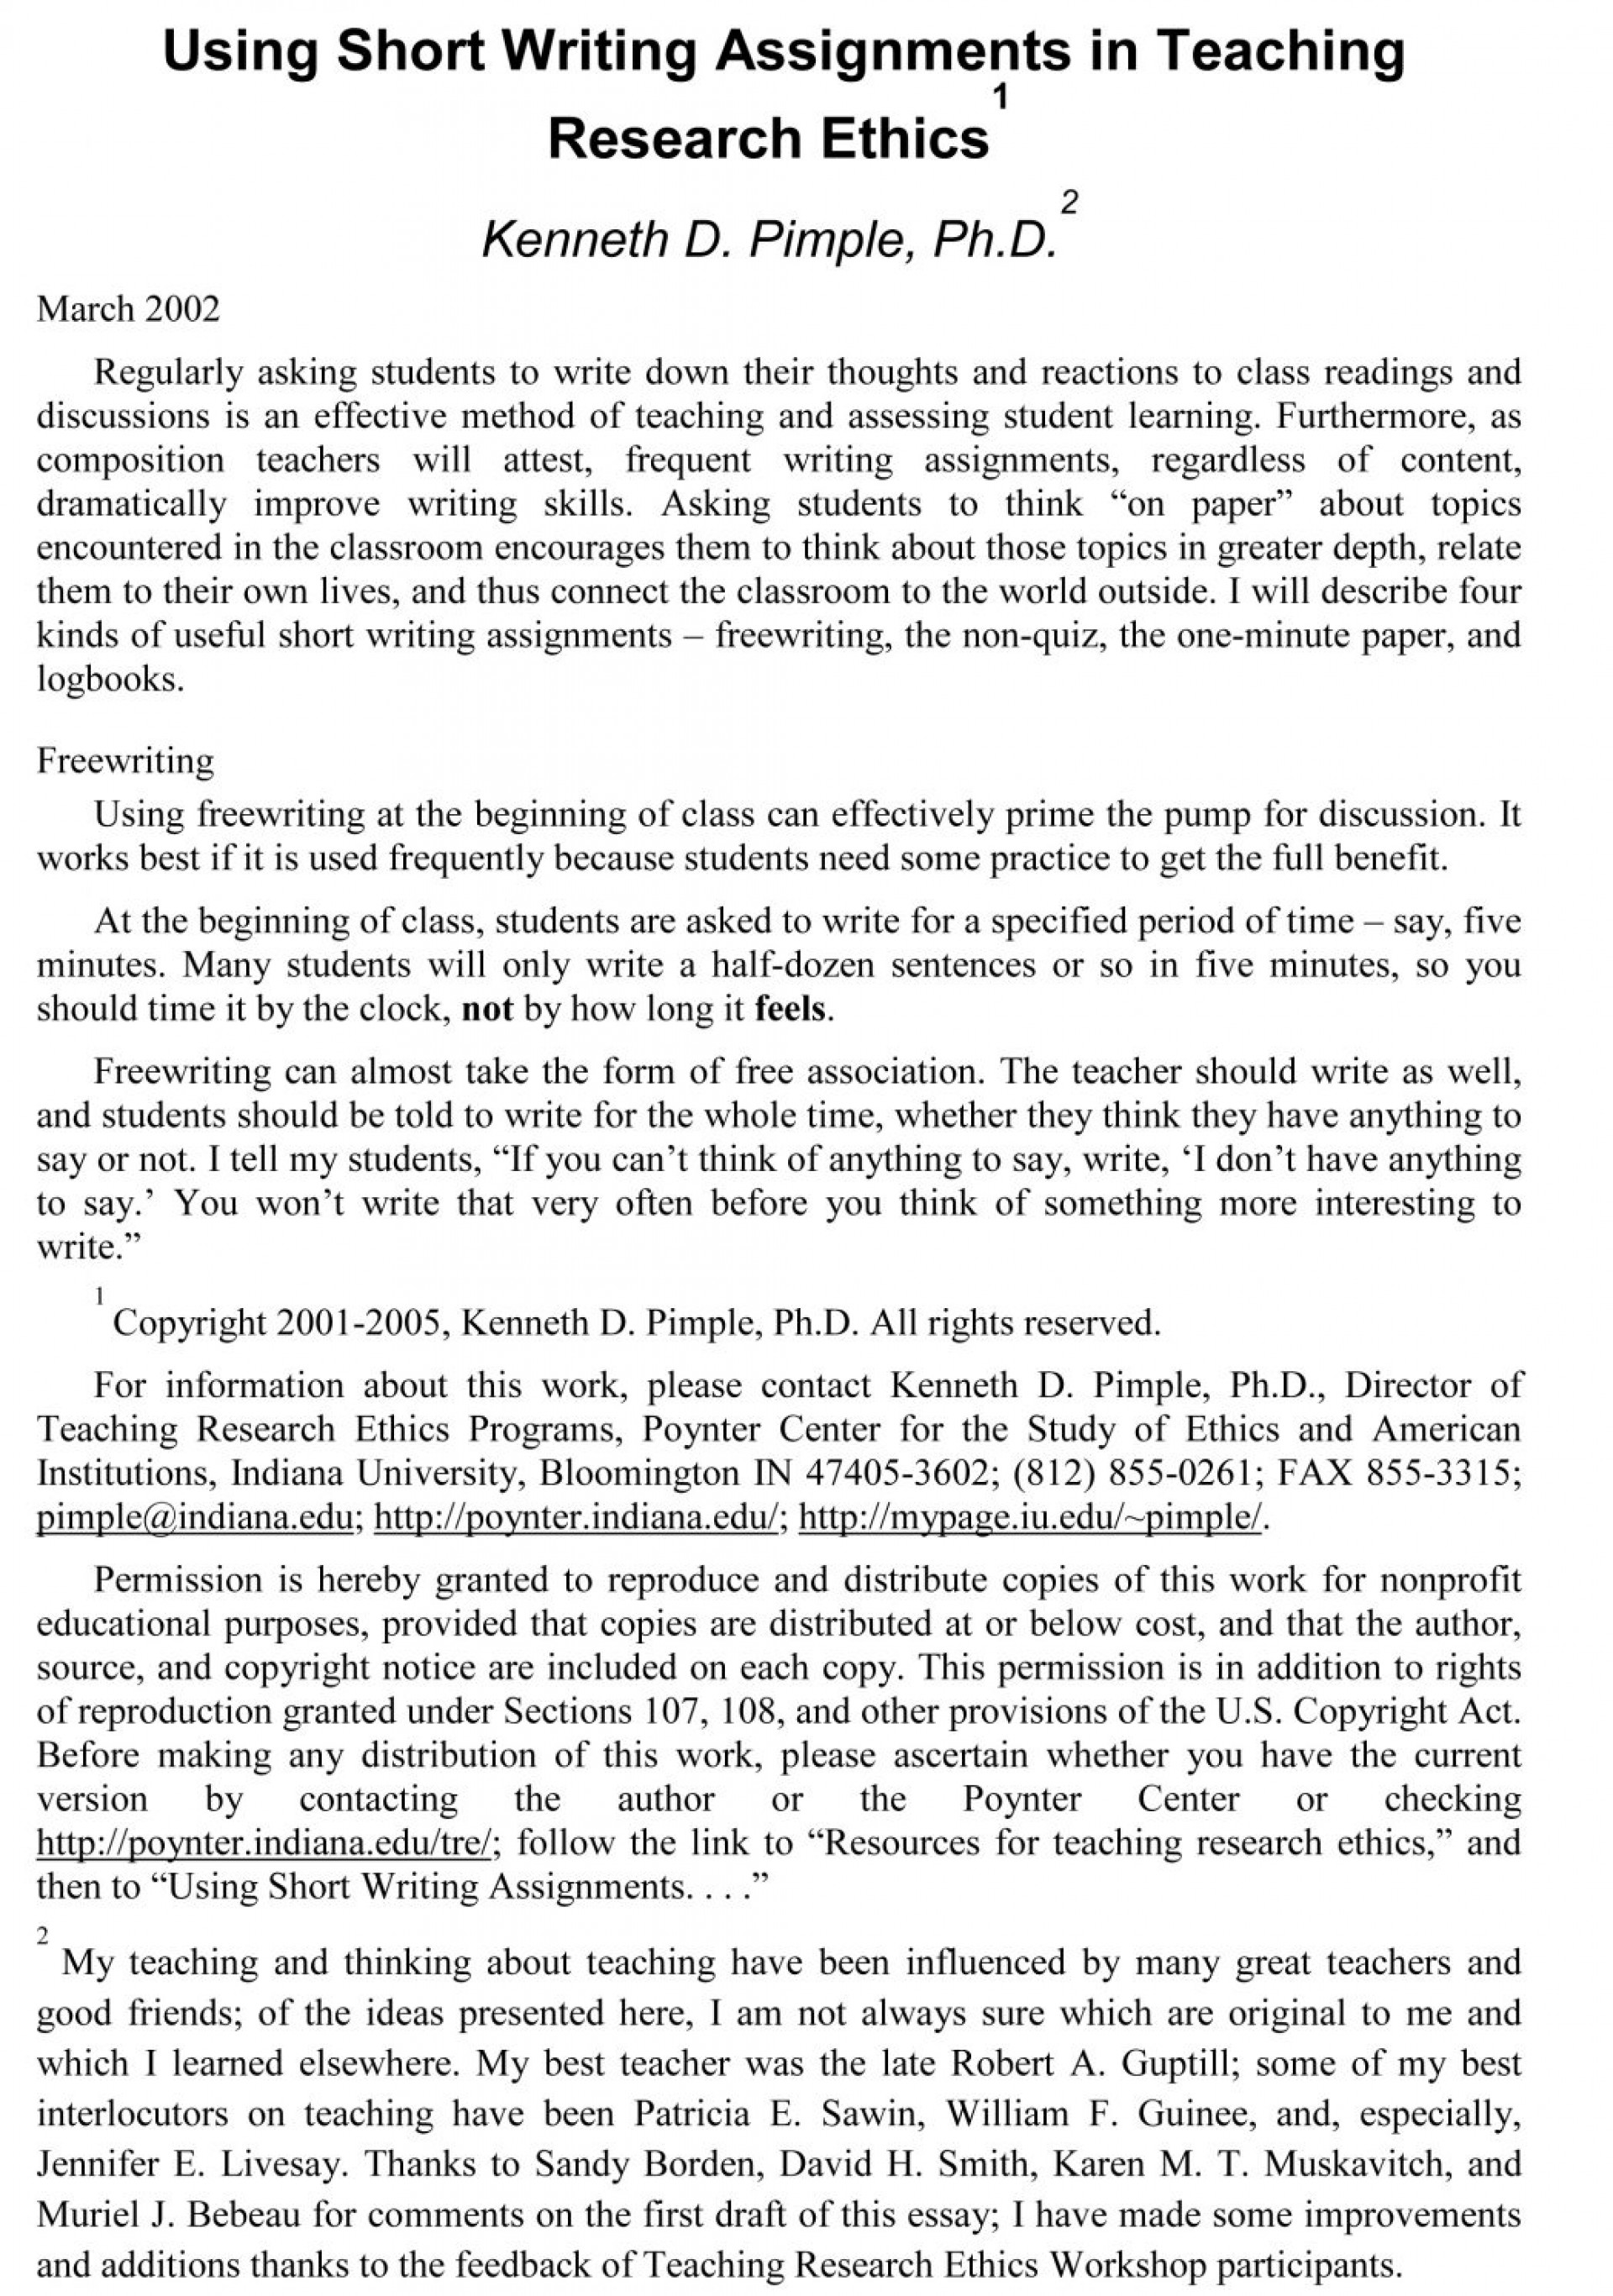 005 Why Do You Want To Teacher Essay Example I Become The Journey Is Everything By Sample Tea Writing On My Role Model In Kannada Ideal Telugu Hindi Day Teachers Impressive Be A Pdf Would 1920